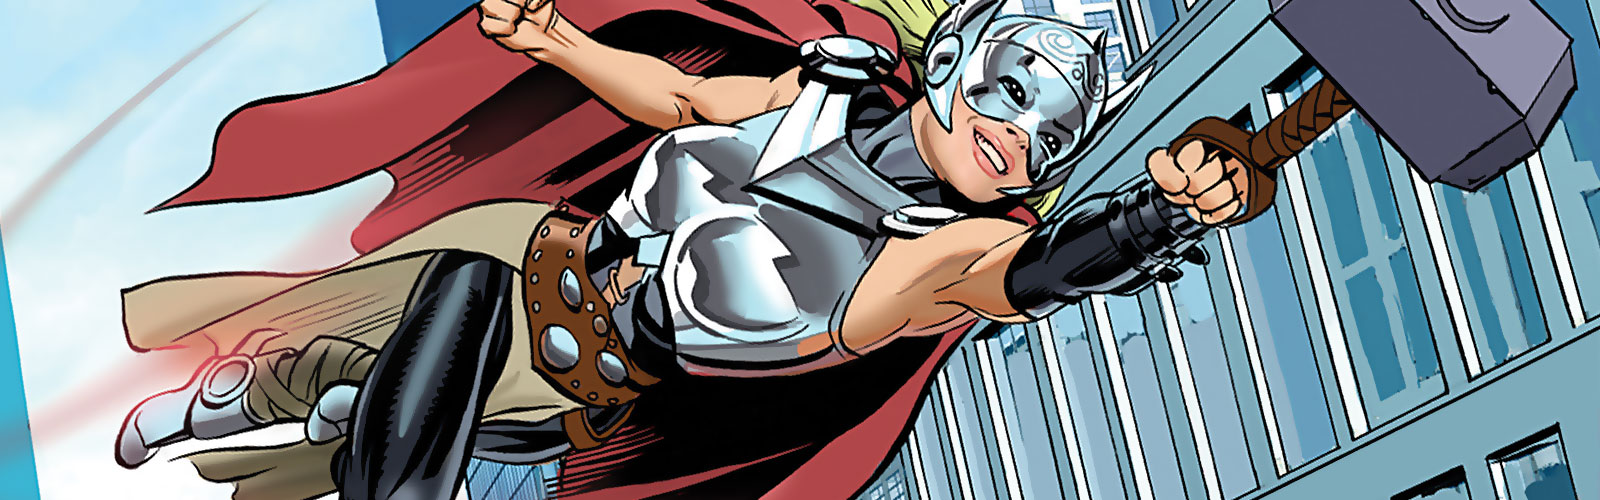 New Releases - 13-05-15: Thor